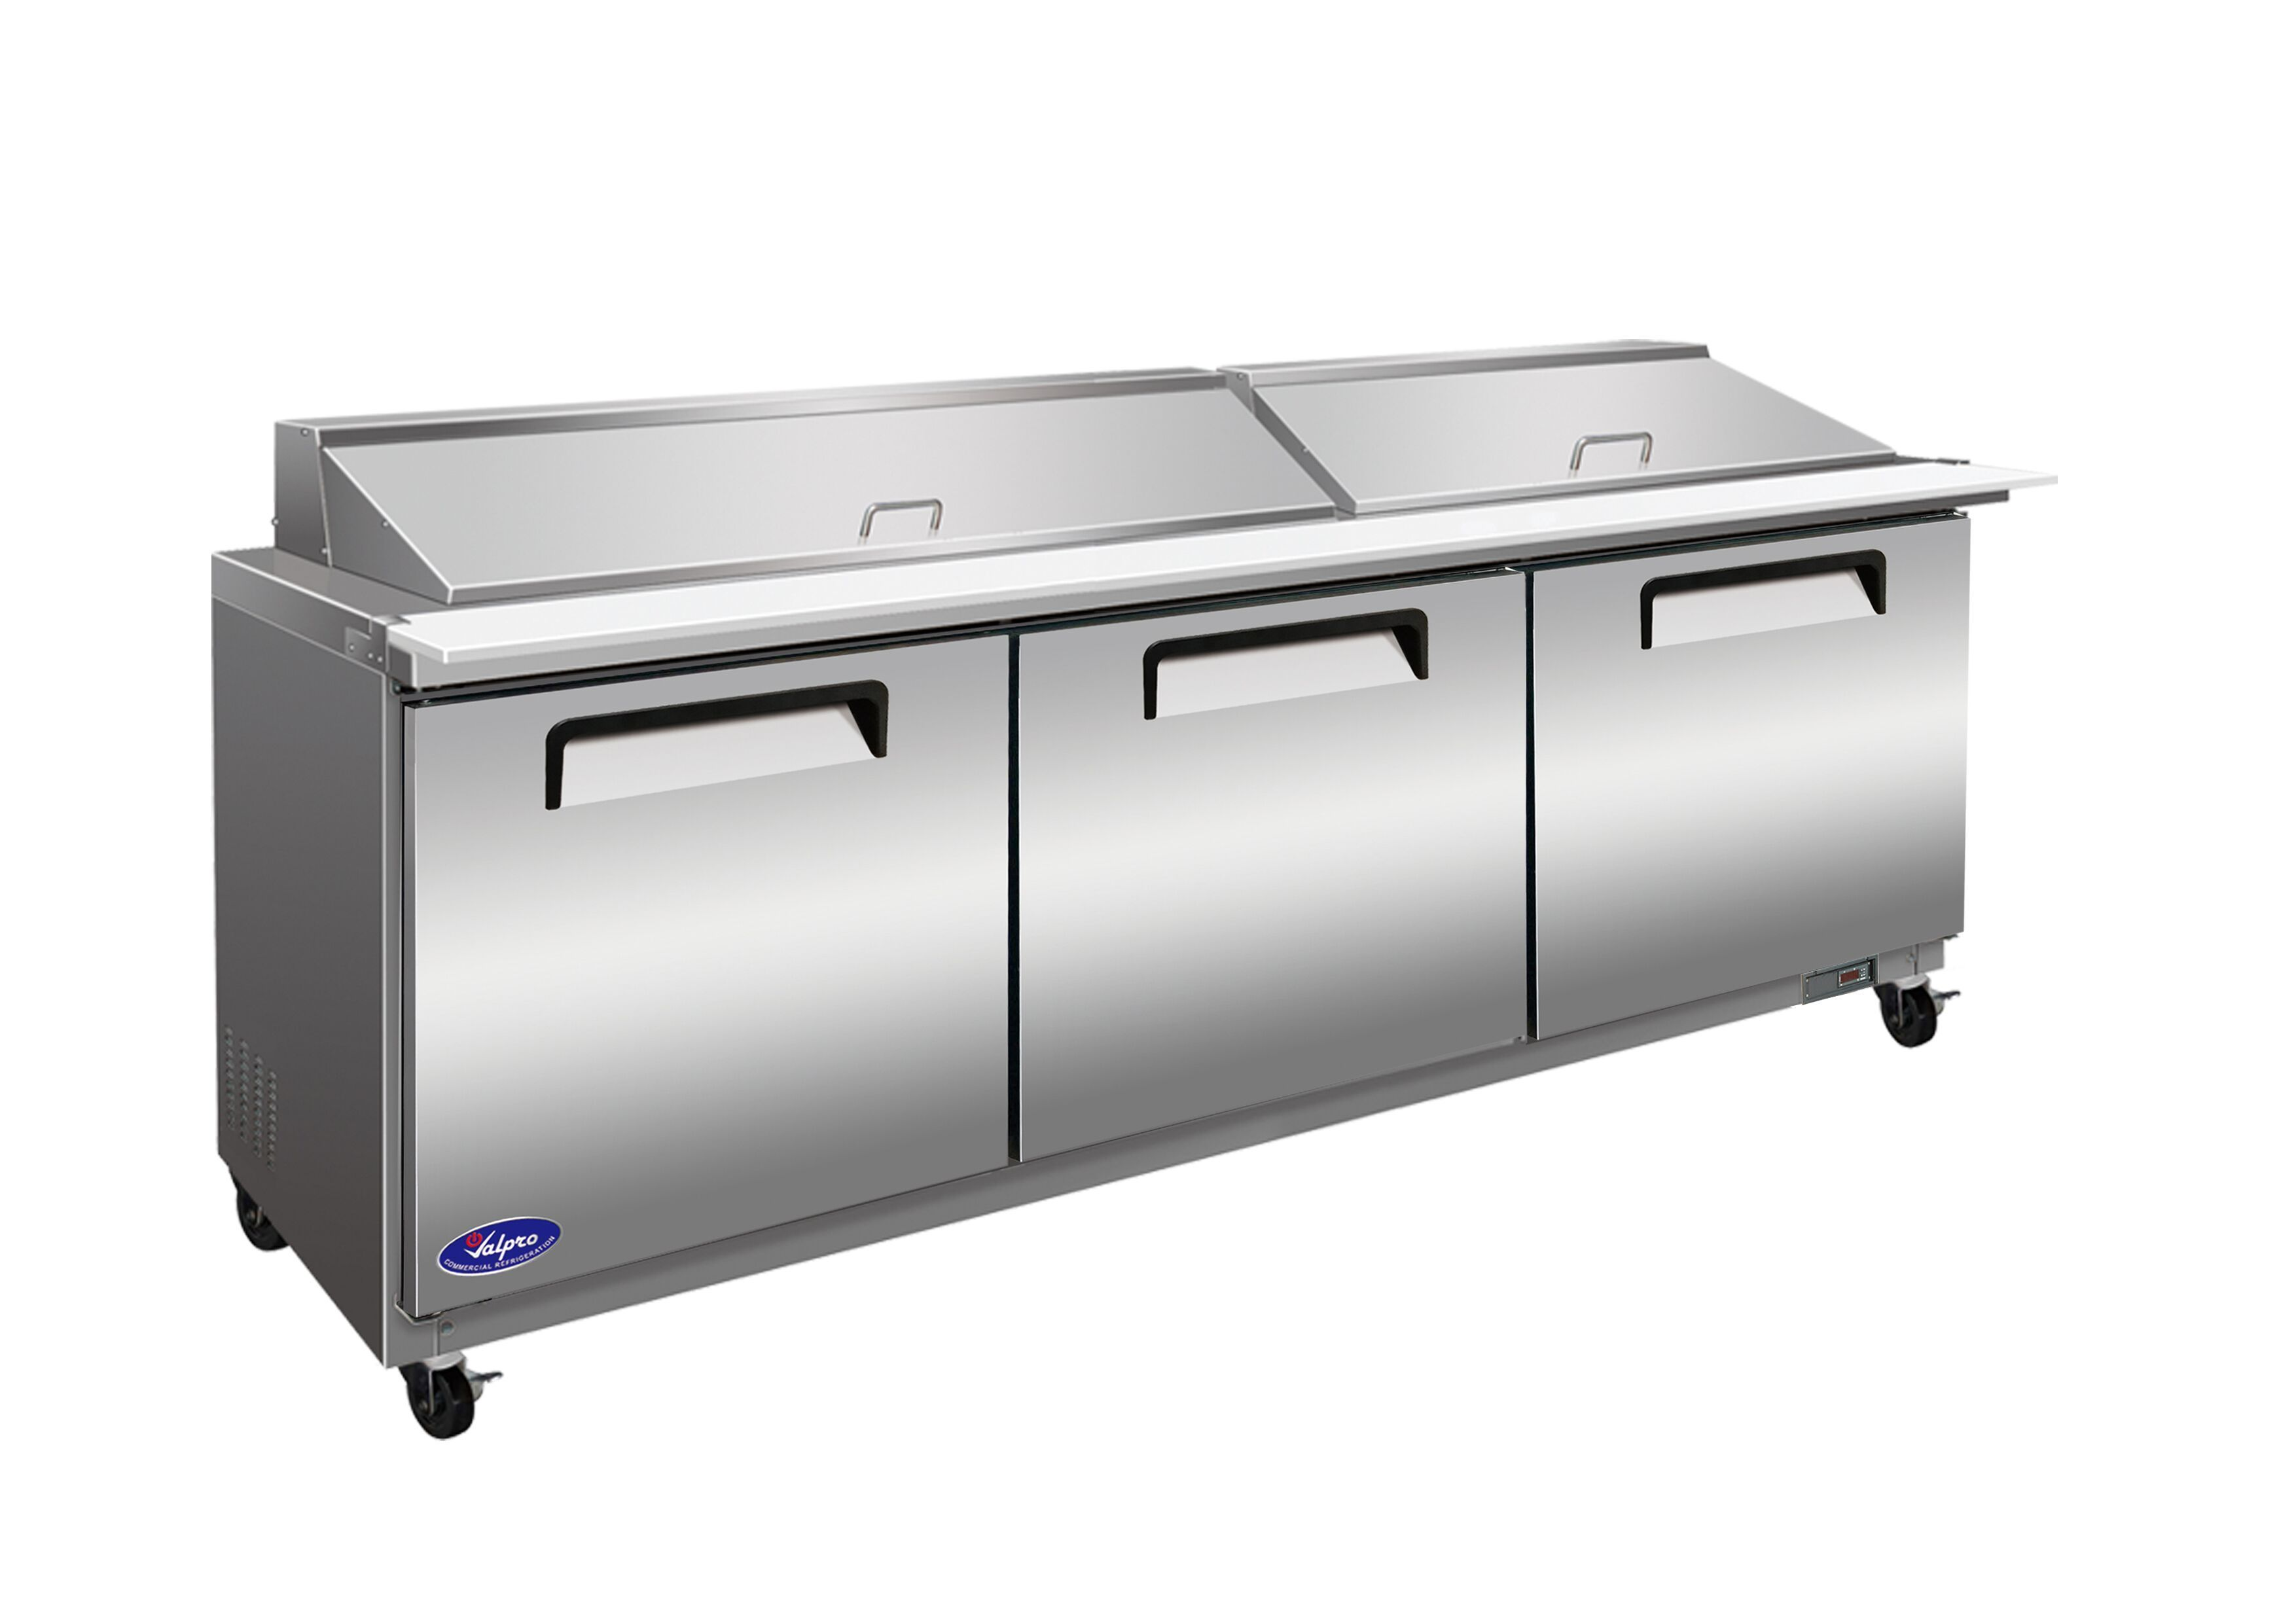 Commercial Refrigerated Sandwich Salad Mega Top Prep Table 72